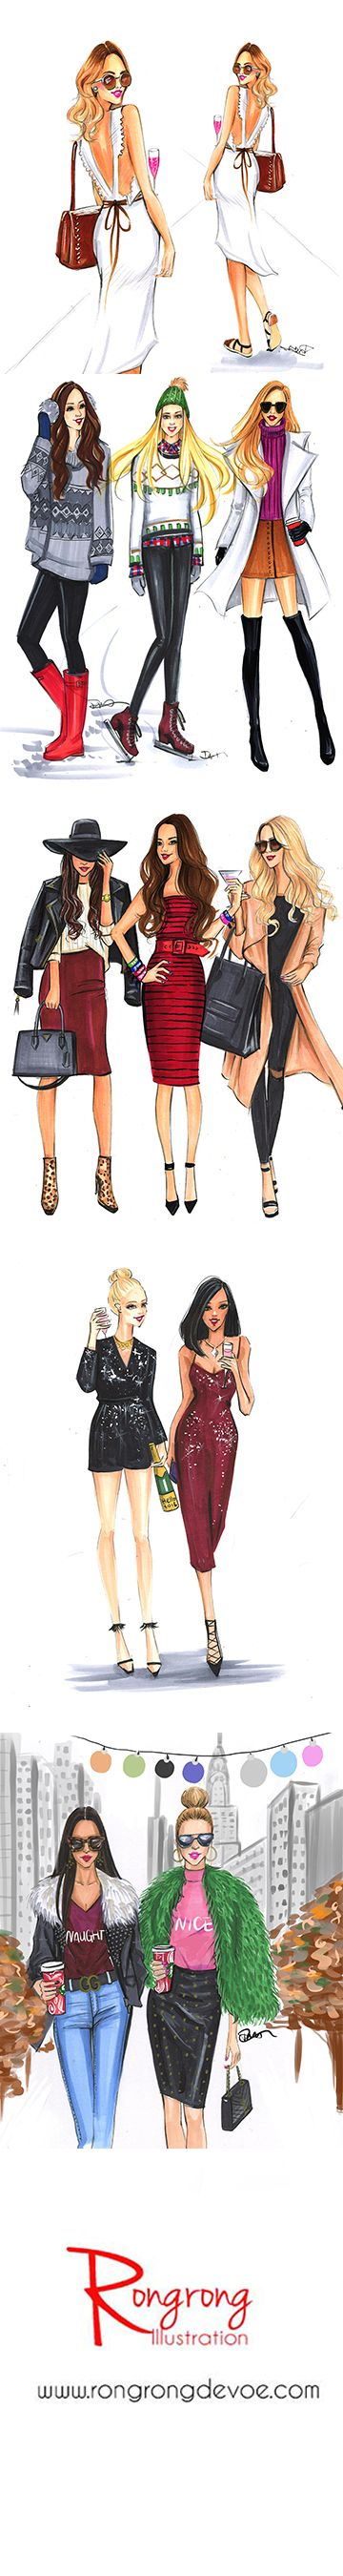 fashion illustrations by Rongrong DeVoe, inspired by street fashion. Check out her Instagram for more fashion sketches